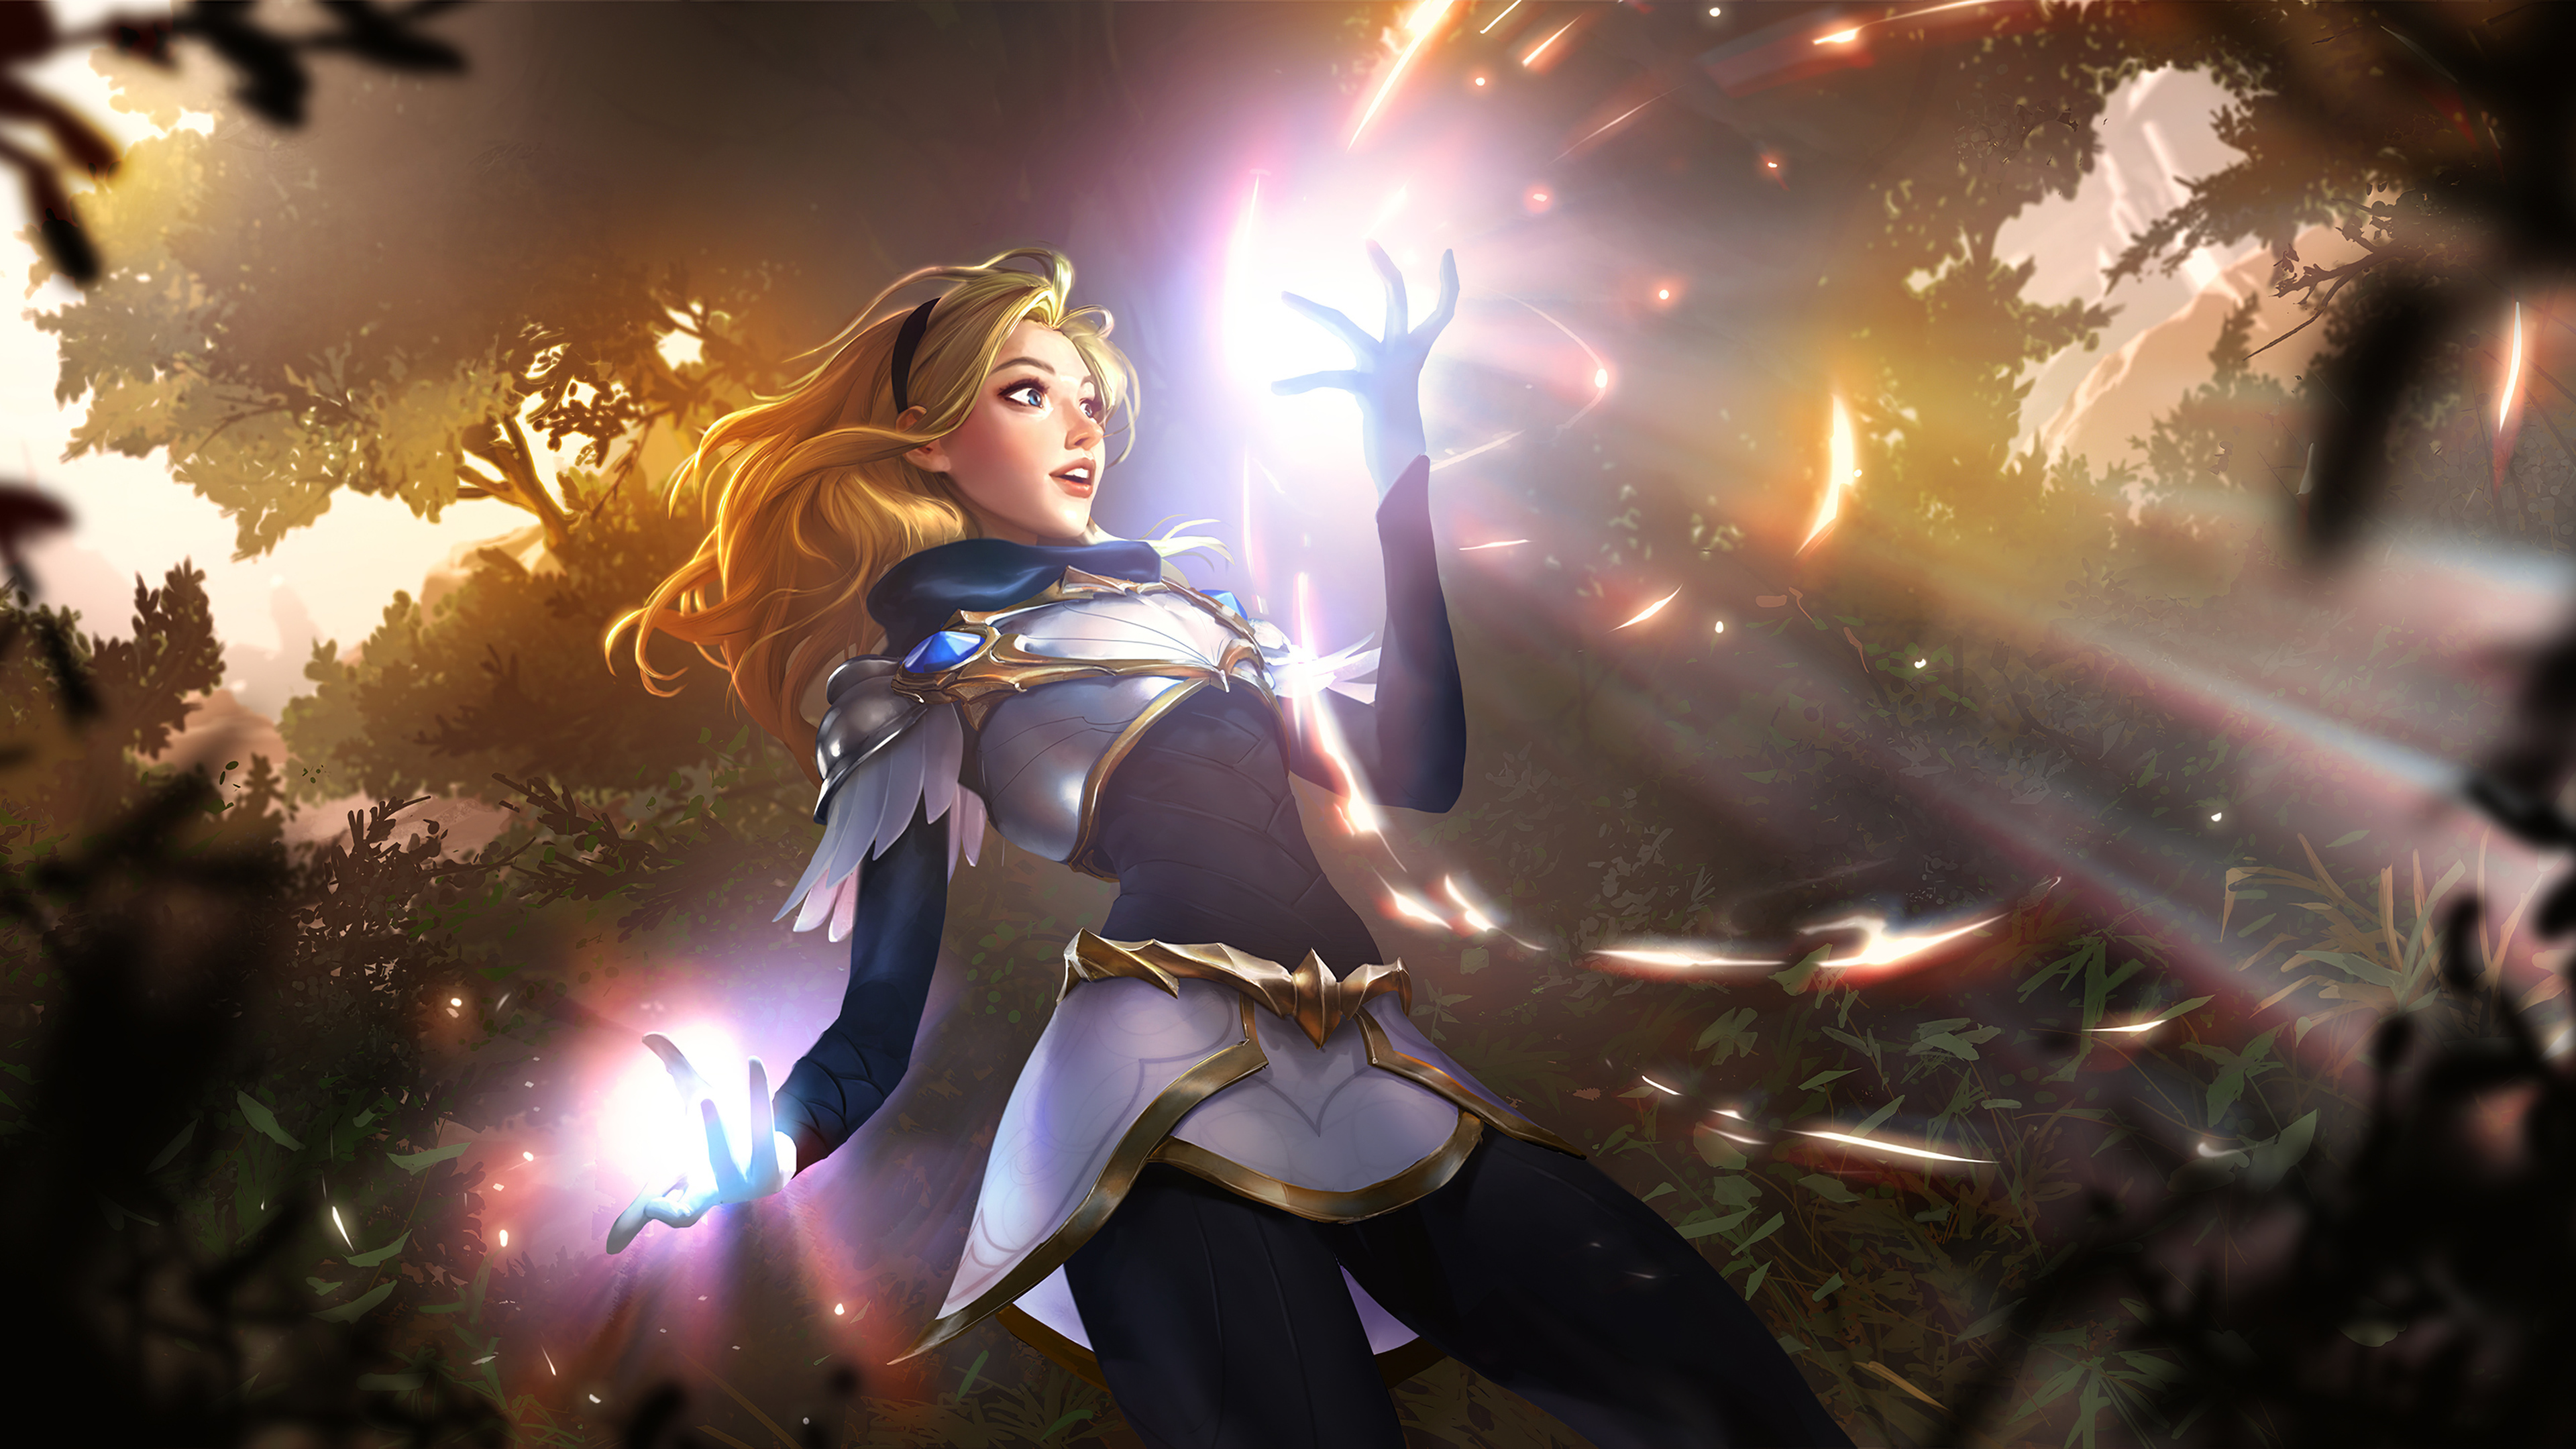 Wallpaper 4k Lux Lol Art League Of Legends Wallpapers